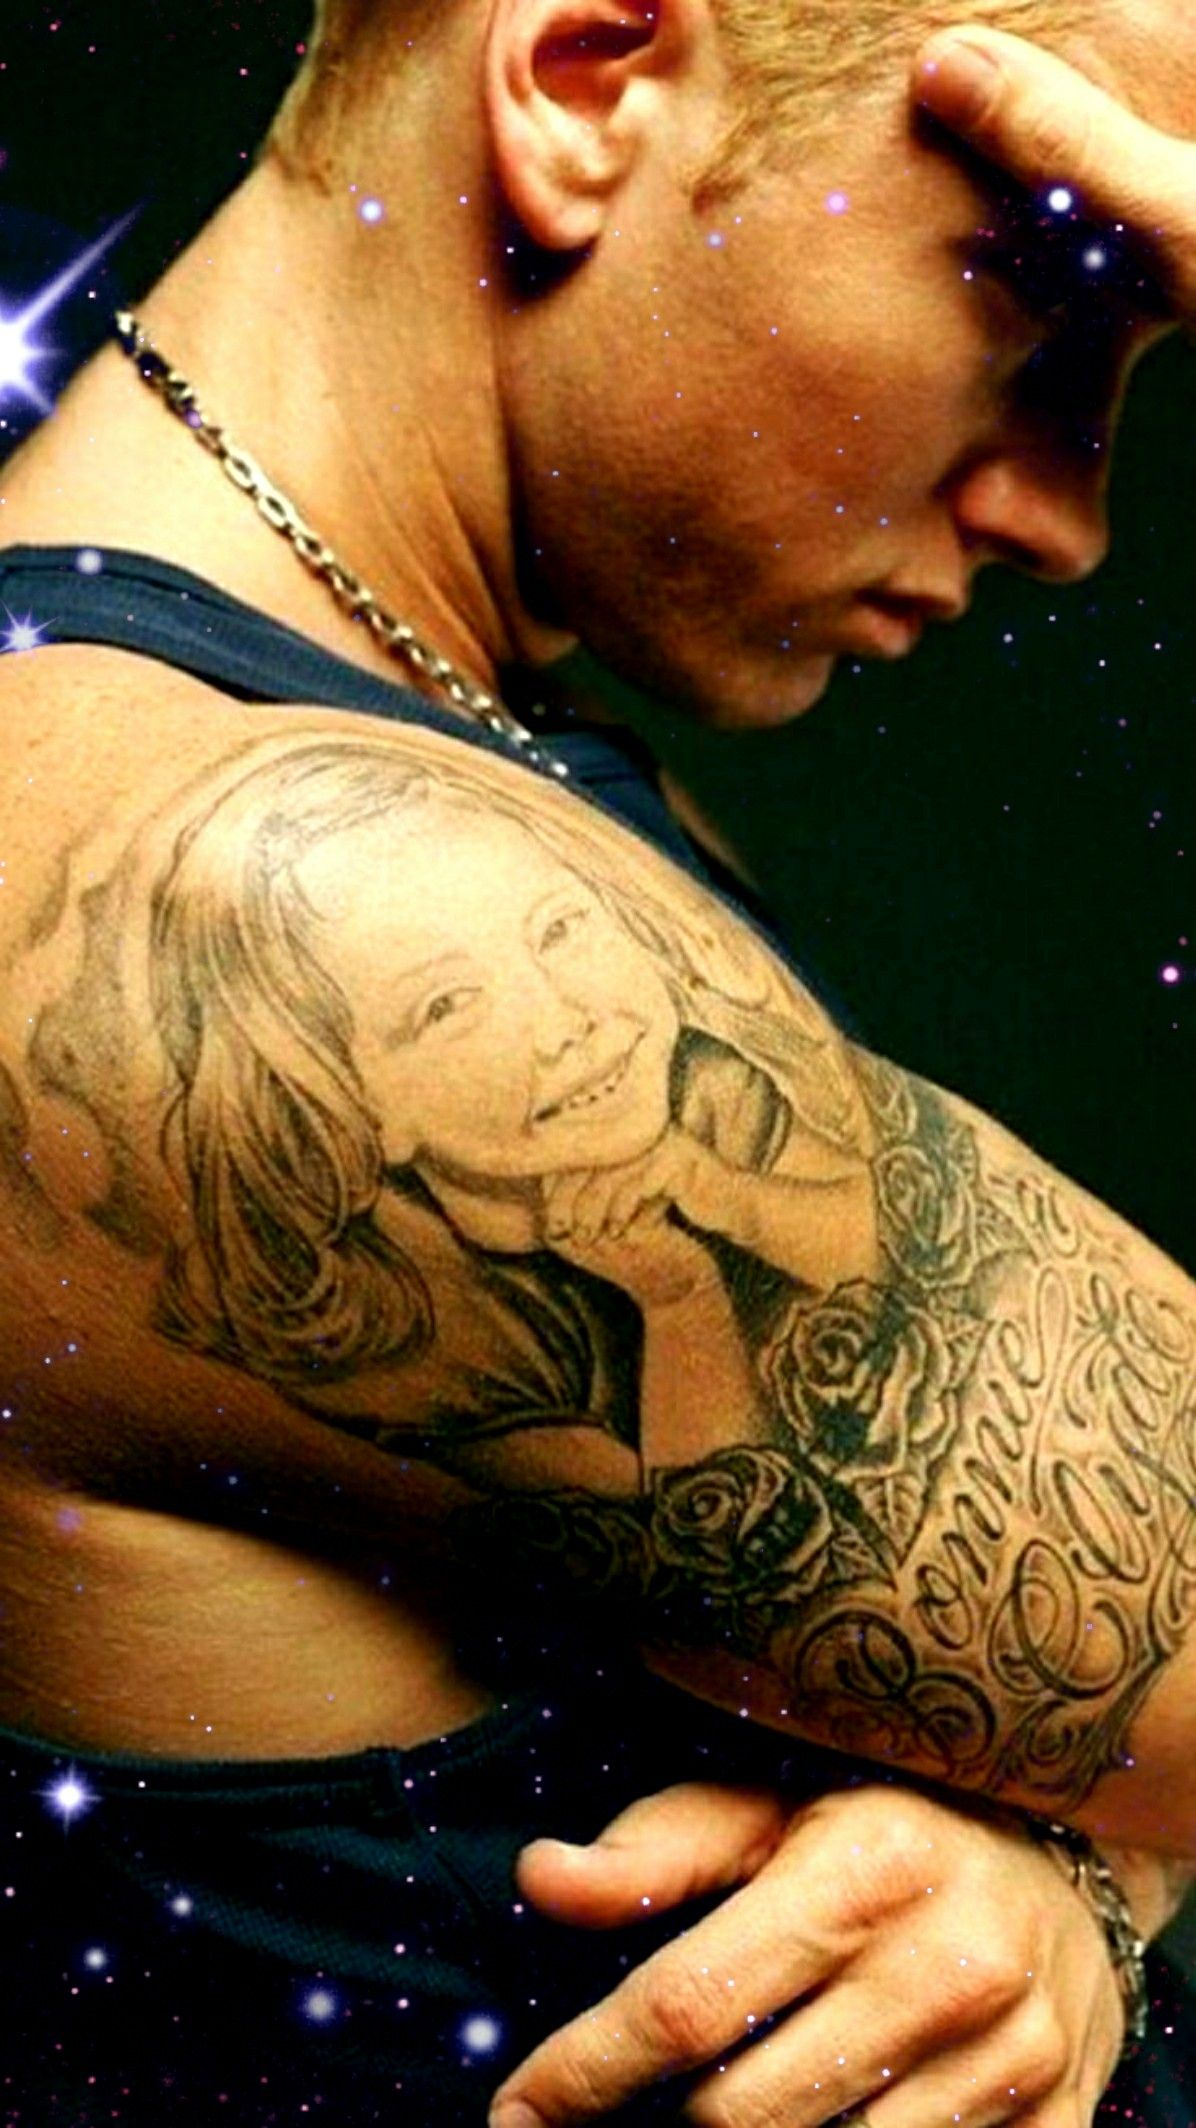 Marshallmatherslll Eminem Father Tattoo Daughter - Tatuajes-eminem